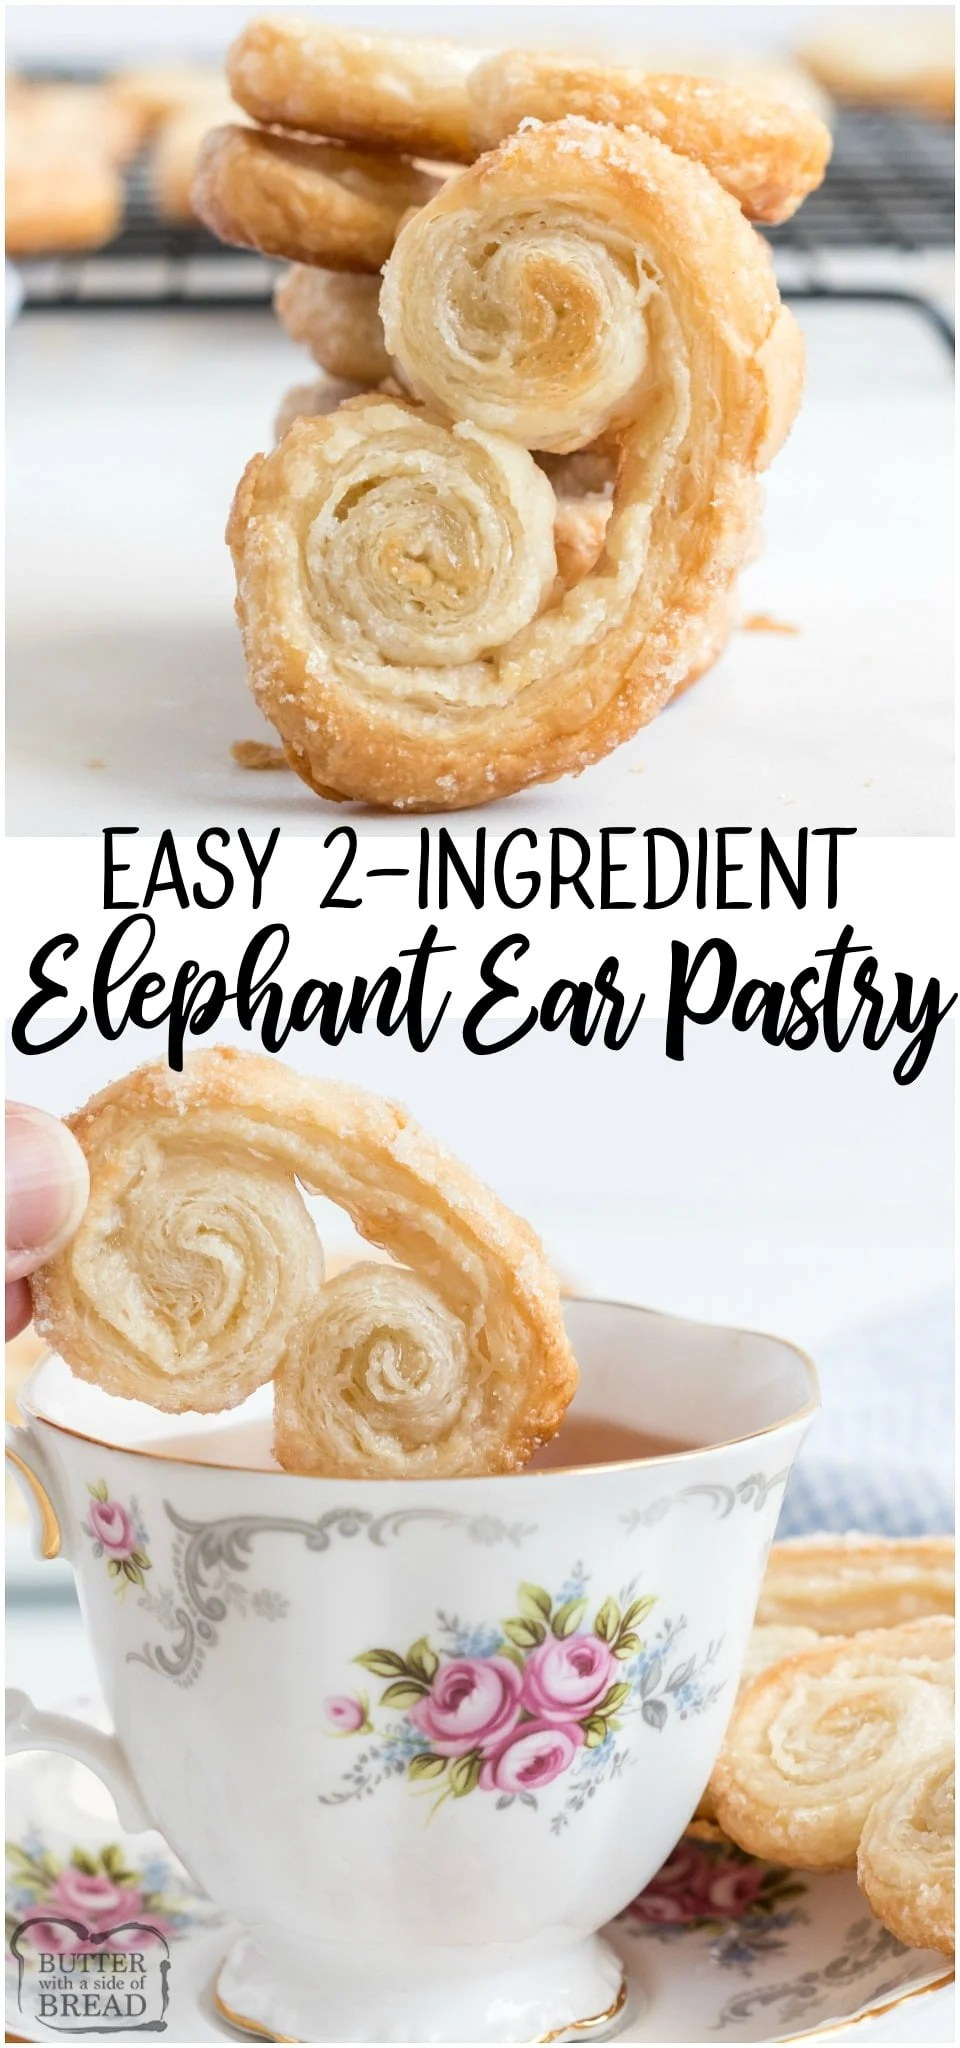 Elephant ears area delicious, buttery crisp sugar-covered french pastry that is also super simple to make! Just 2 INGREDIENTS and you can enjoy these Elephant Ear pastries at home!